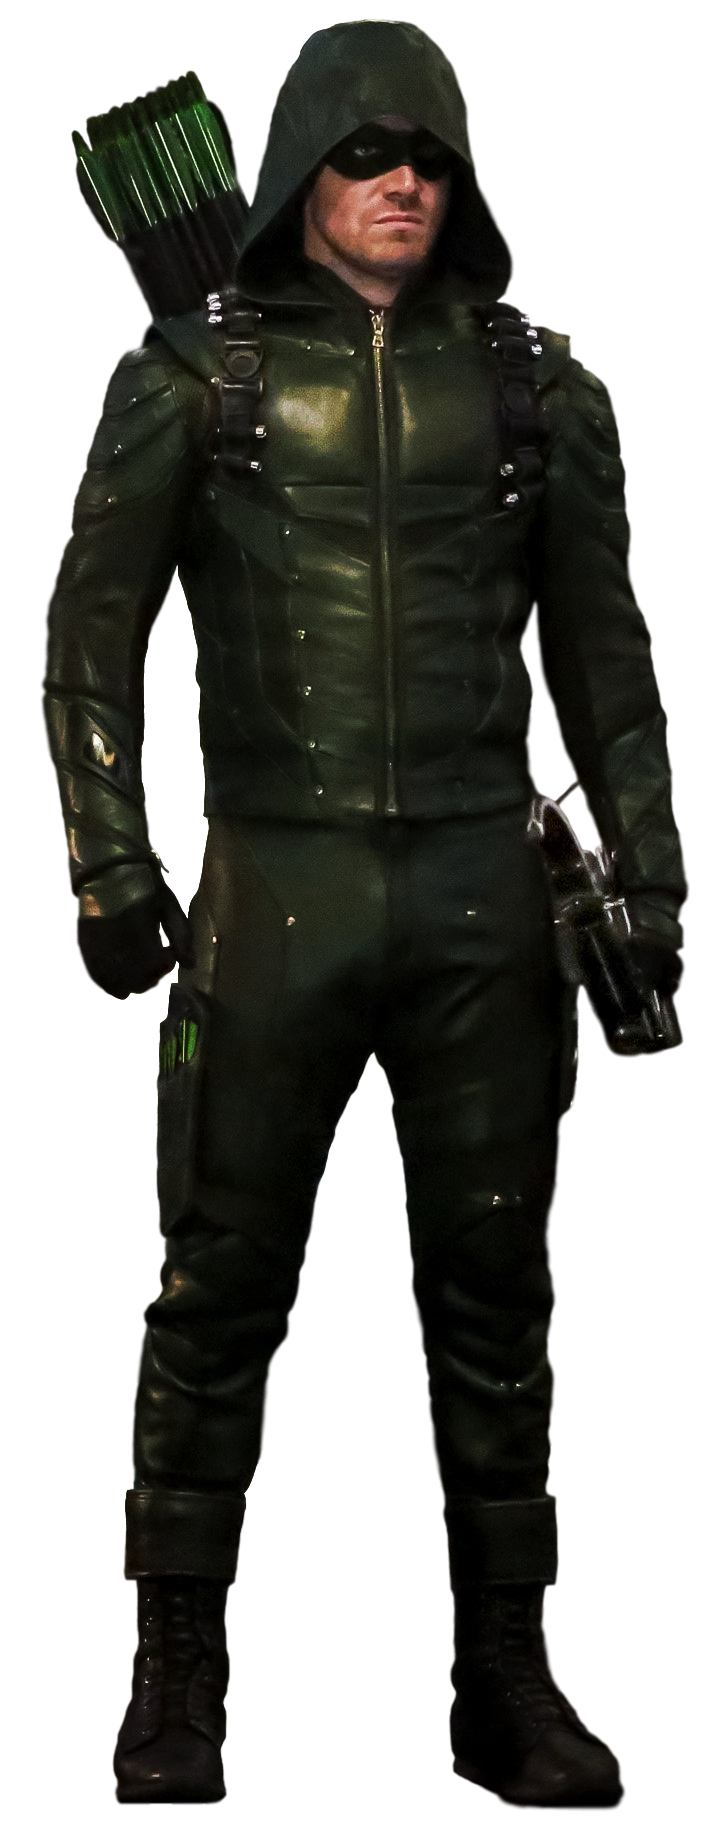 Green arrow png season 5. Transparent background by camo